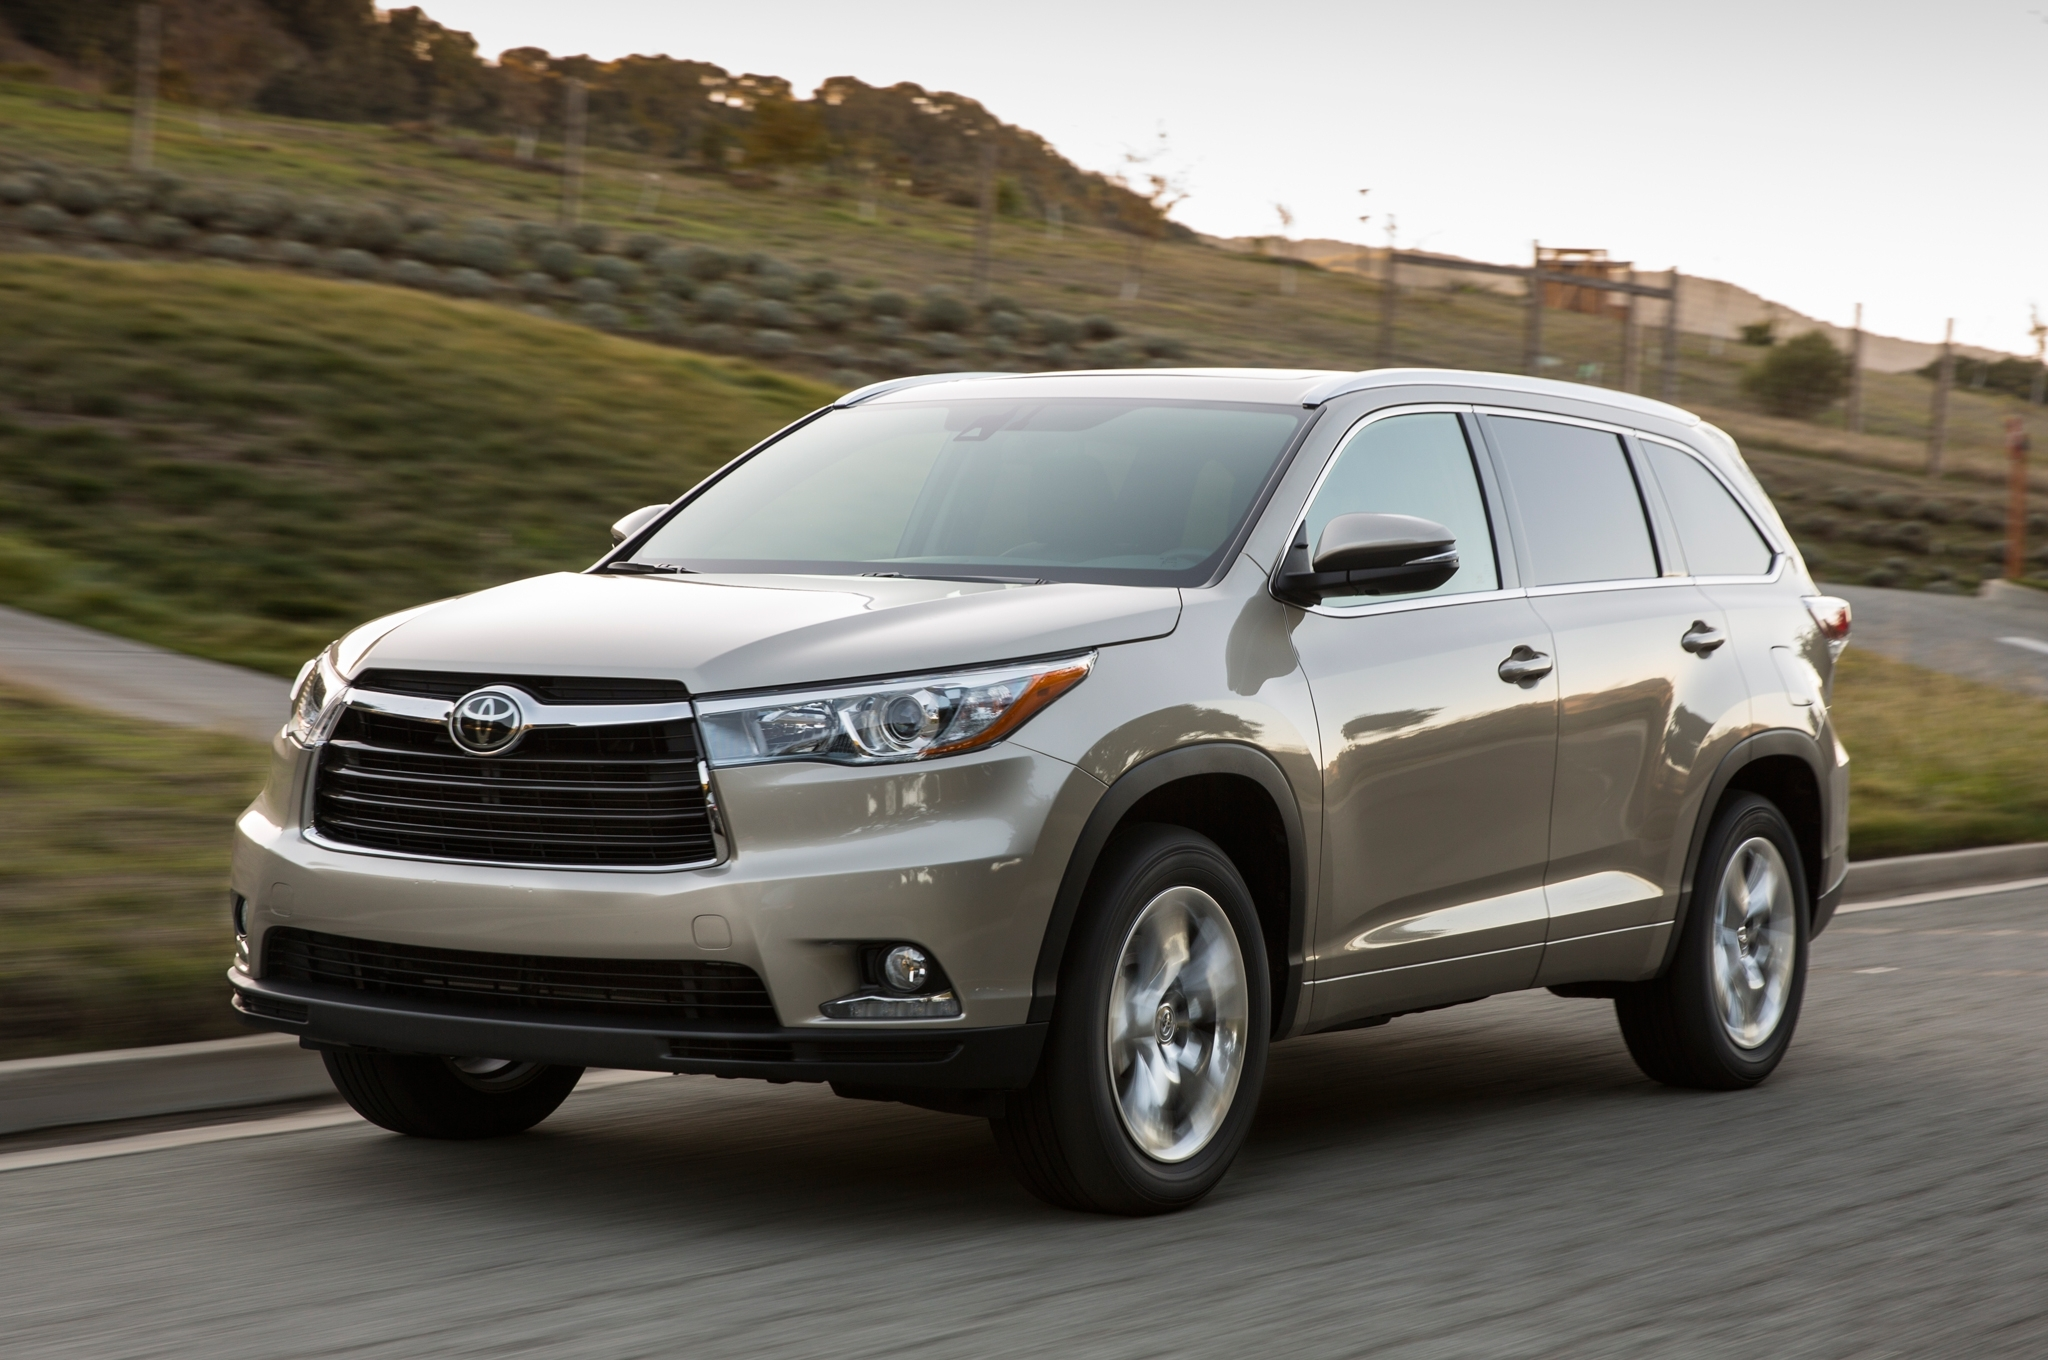 Preview: 2016 Toyota Highlander